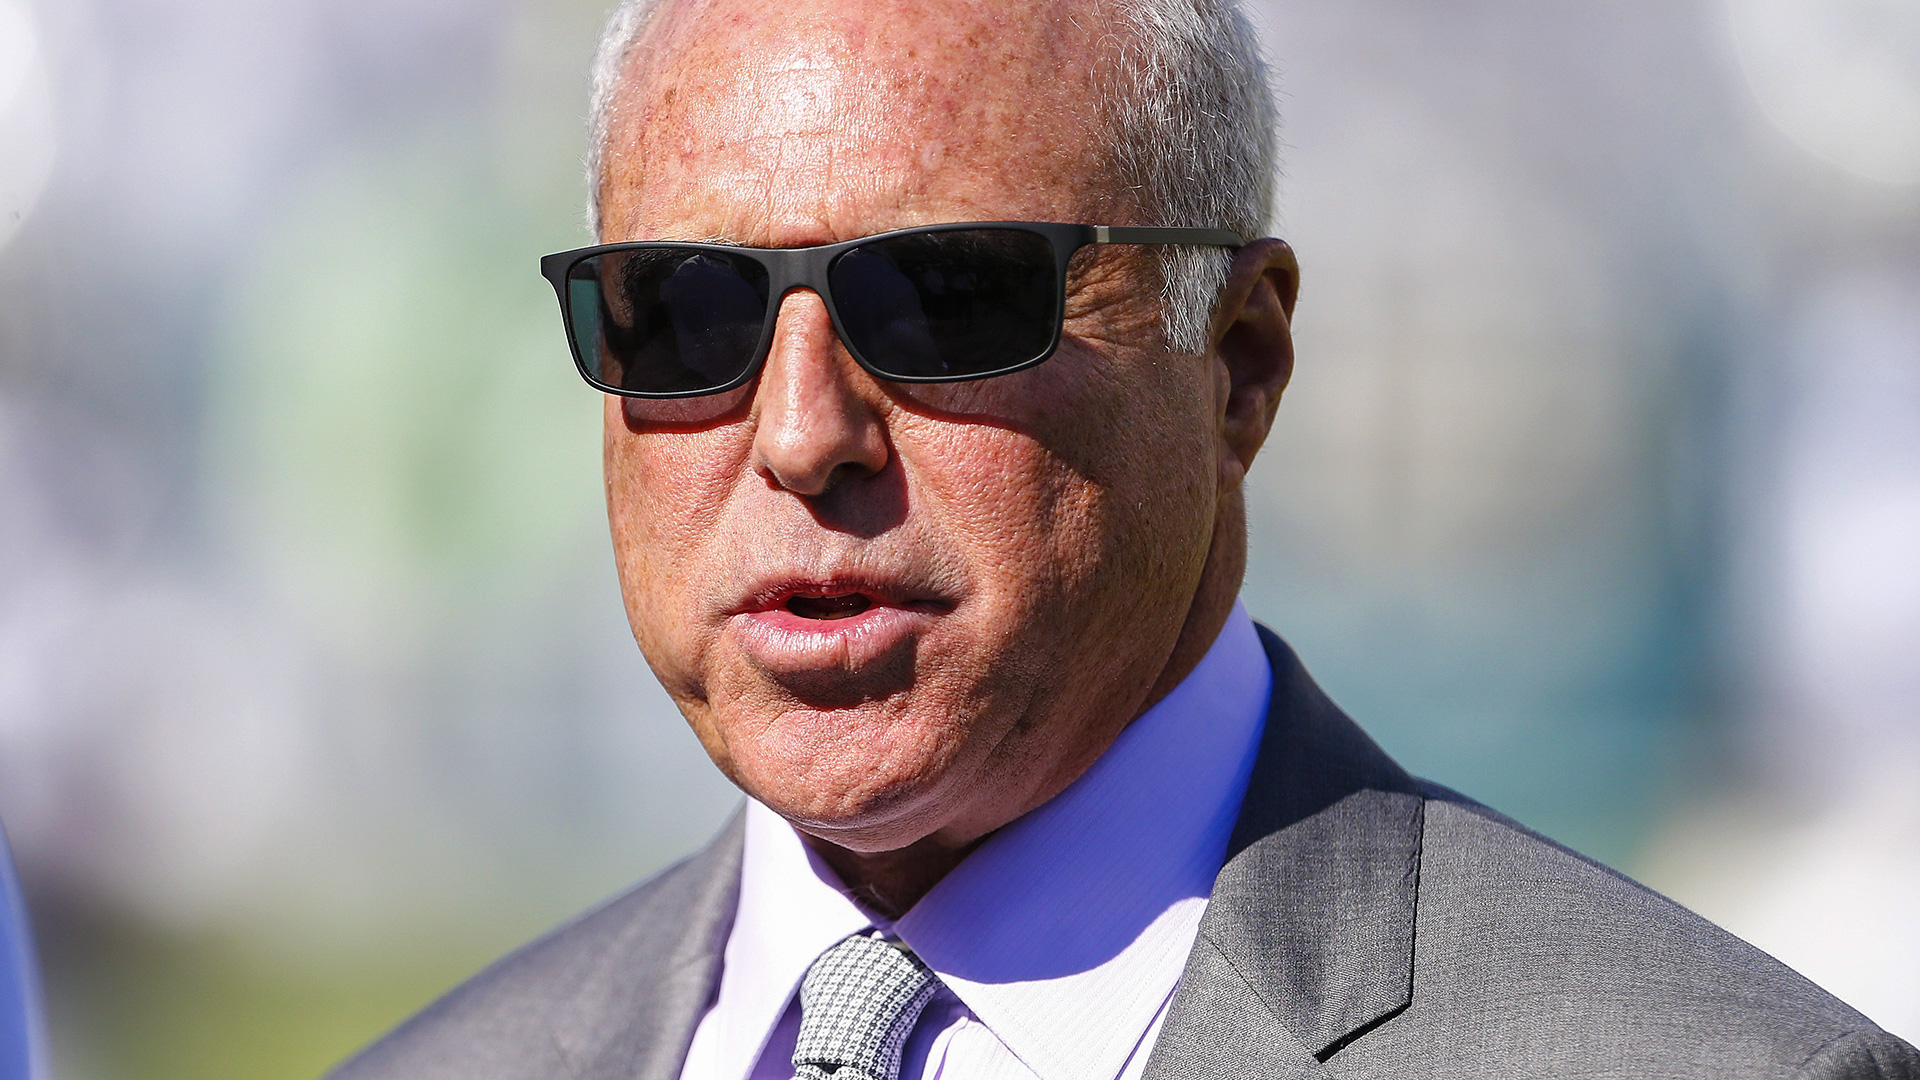 Eagles owner Jeffrey Lurie shares powerful message on fighting racial injustice: Change 'starts with us' 1